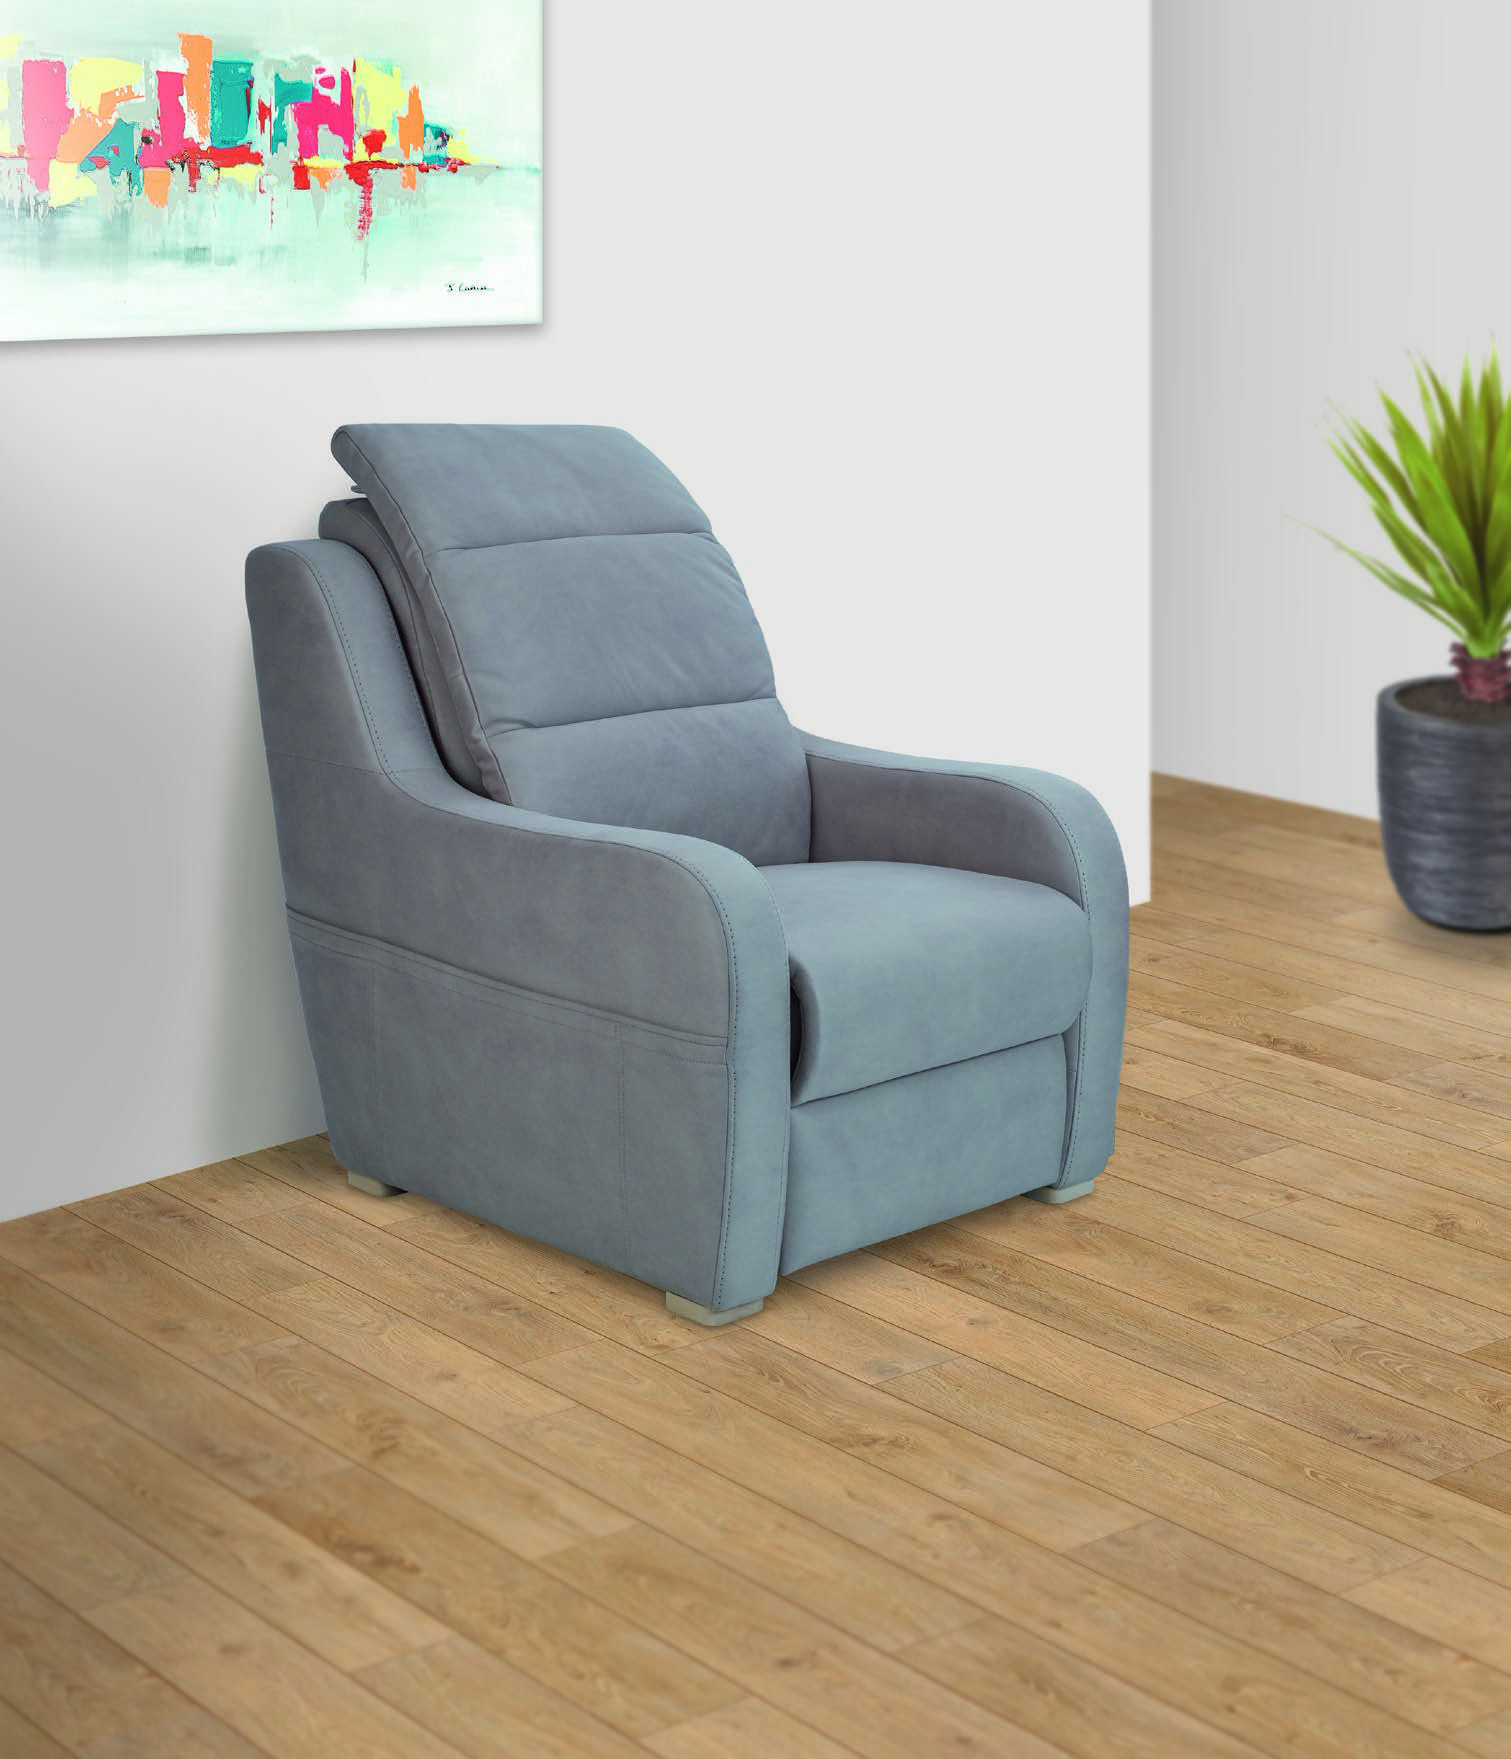 Epingle Sur Fauteuil Relax Fauteuil Relaxation